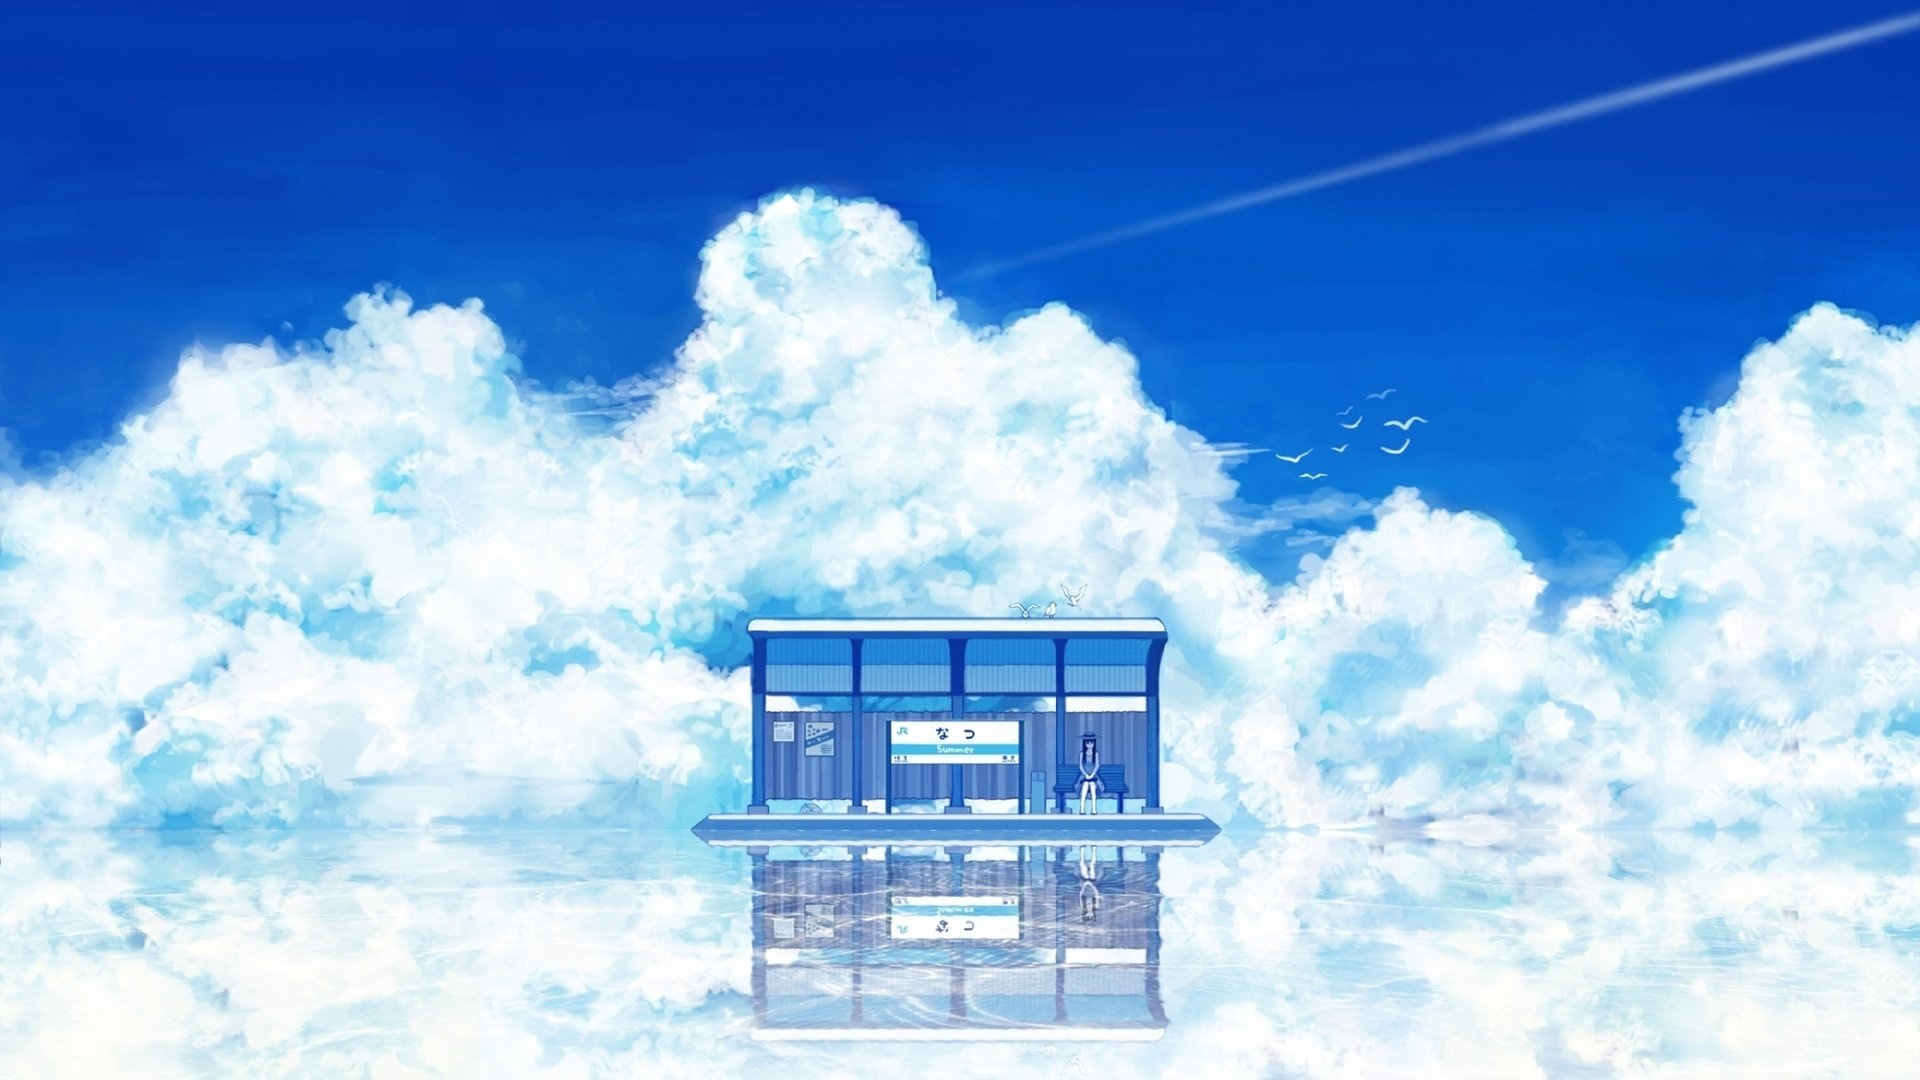 Anime Landscape With Clouds pc wallpaper